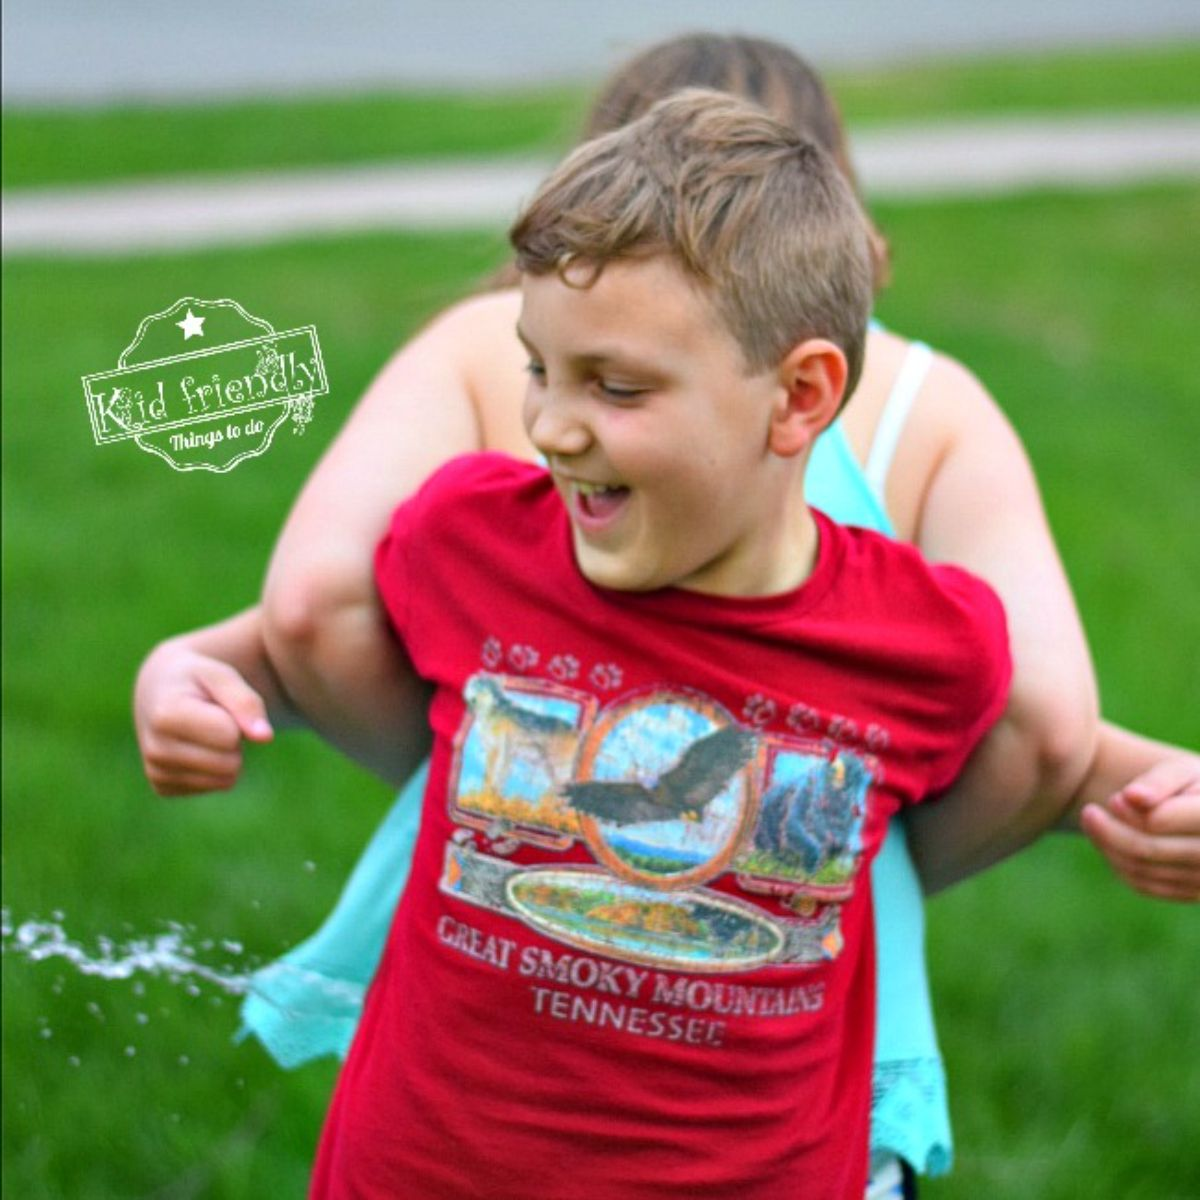 """the text reads """"Kid friendly things to do"""" the image is of a girl and boy linking arms whilst facing away from each other. A burst water balloon is between them"""